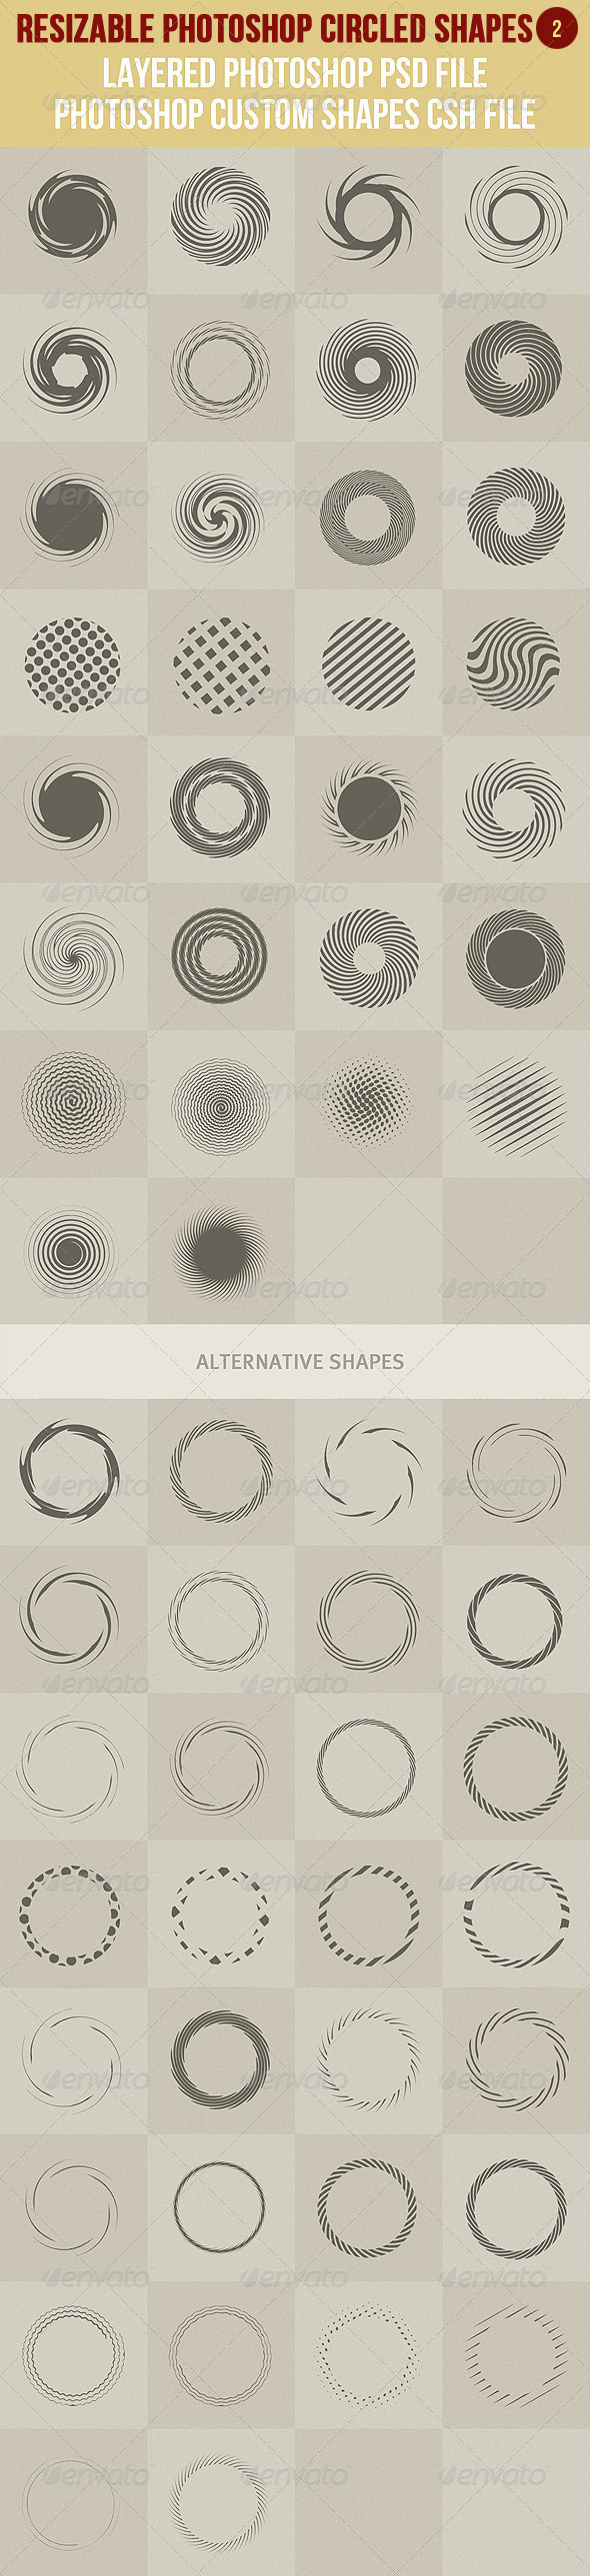 GraphicRiver Photoshop Circled Shapes 2 2825415